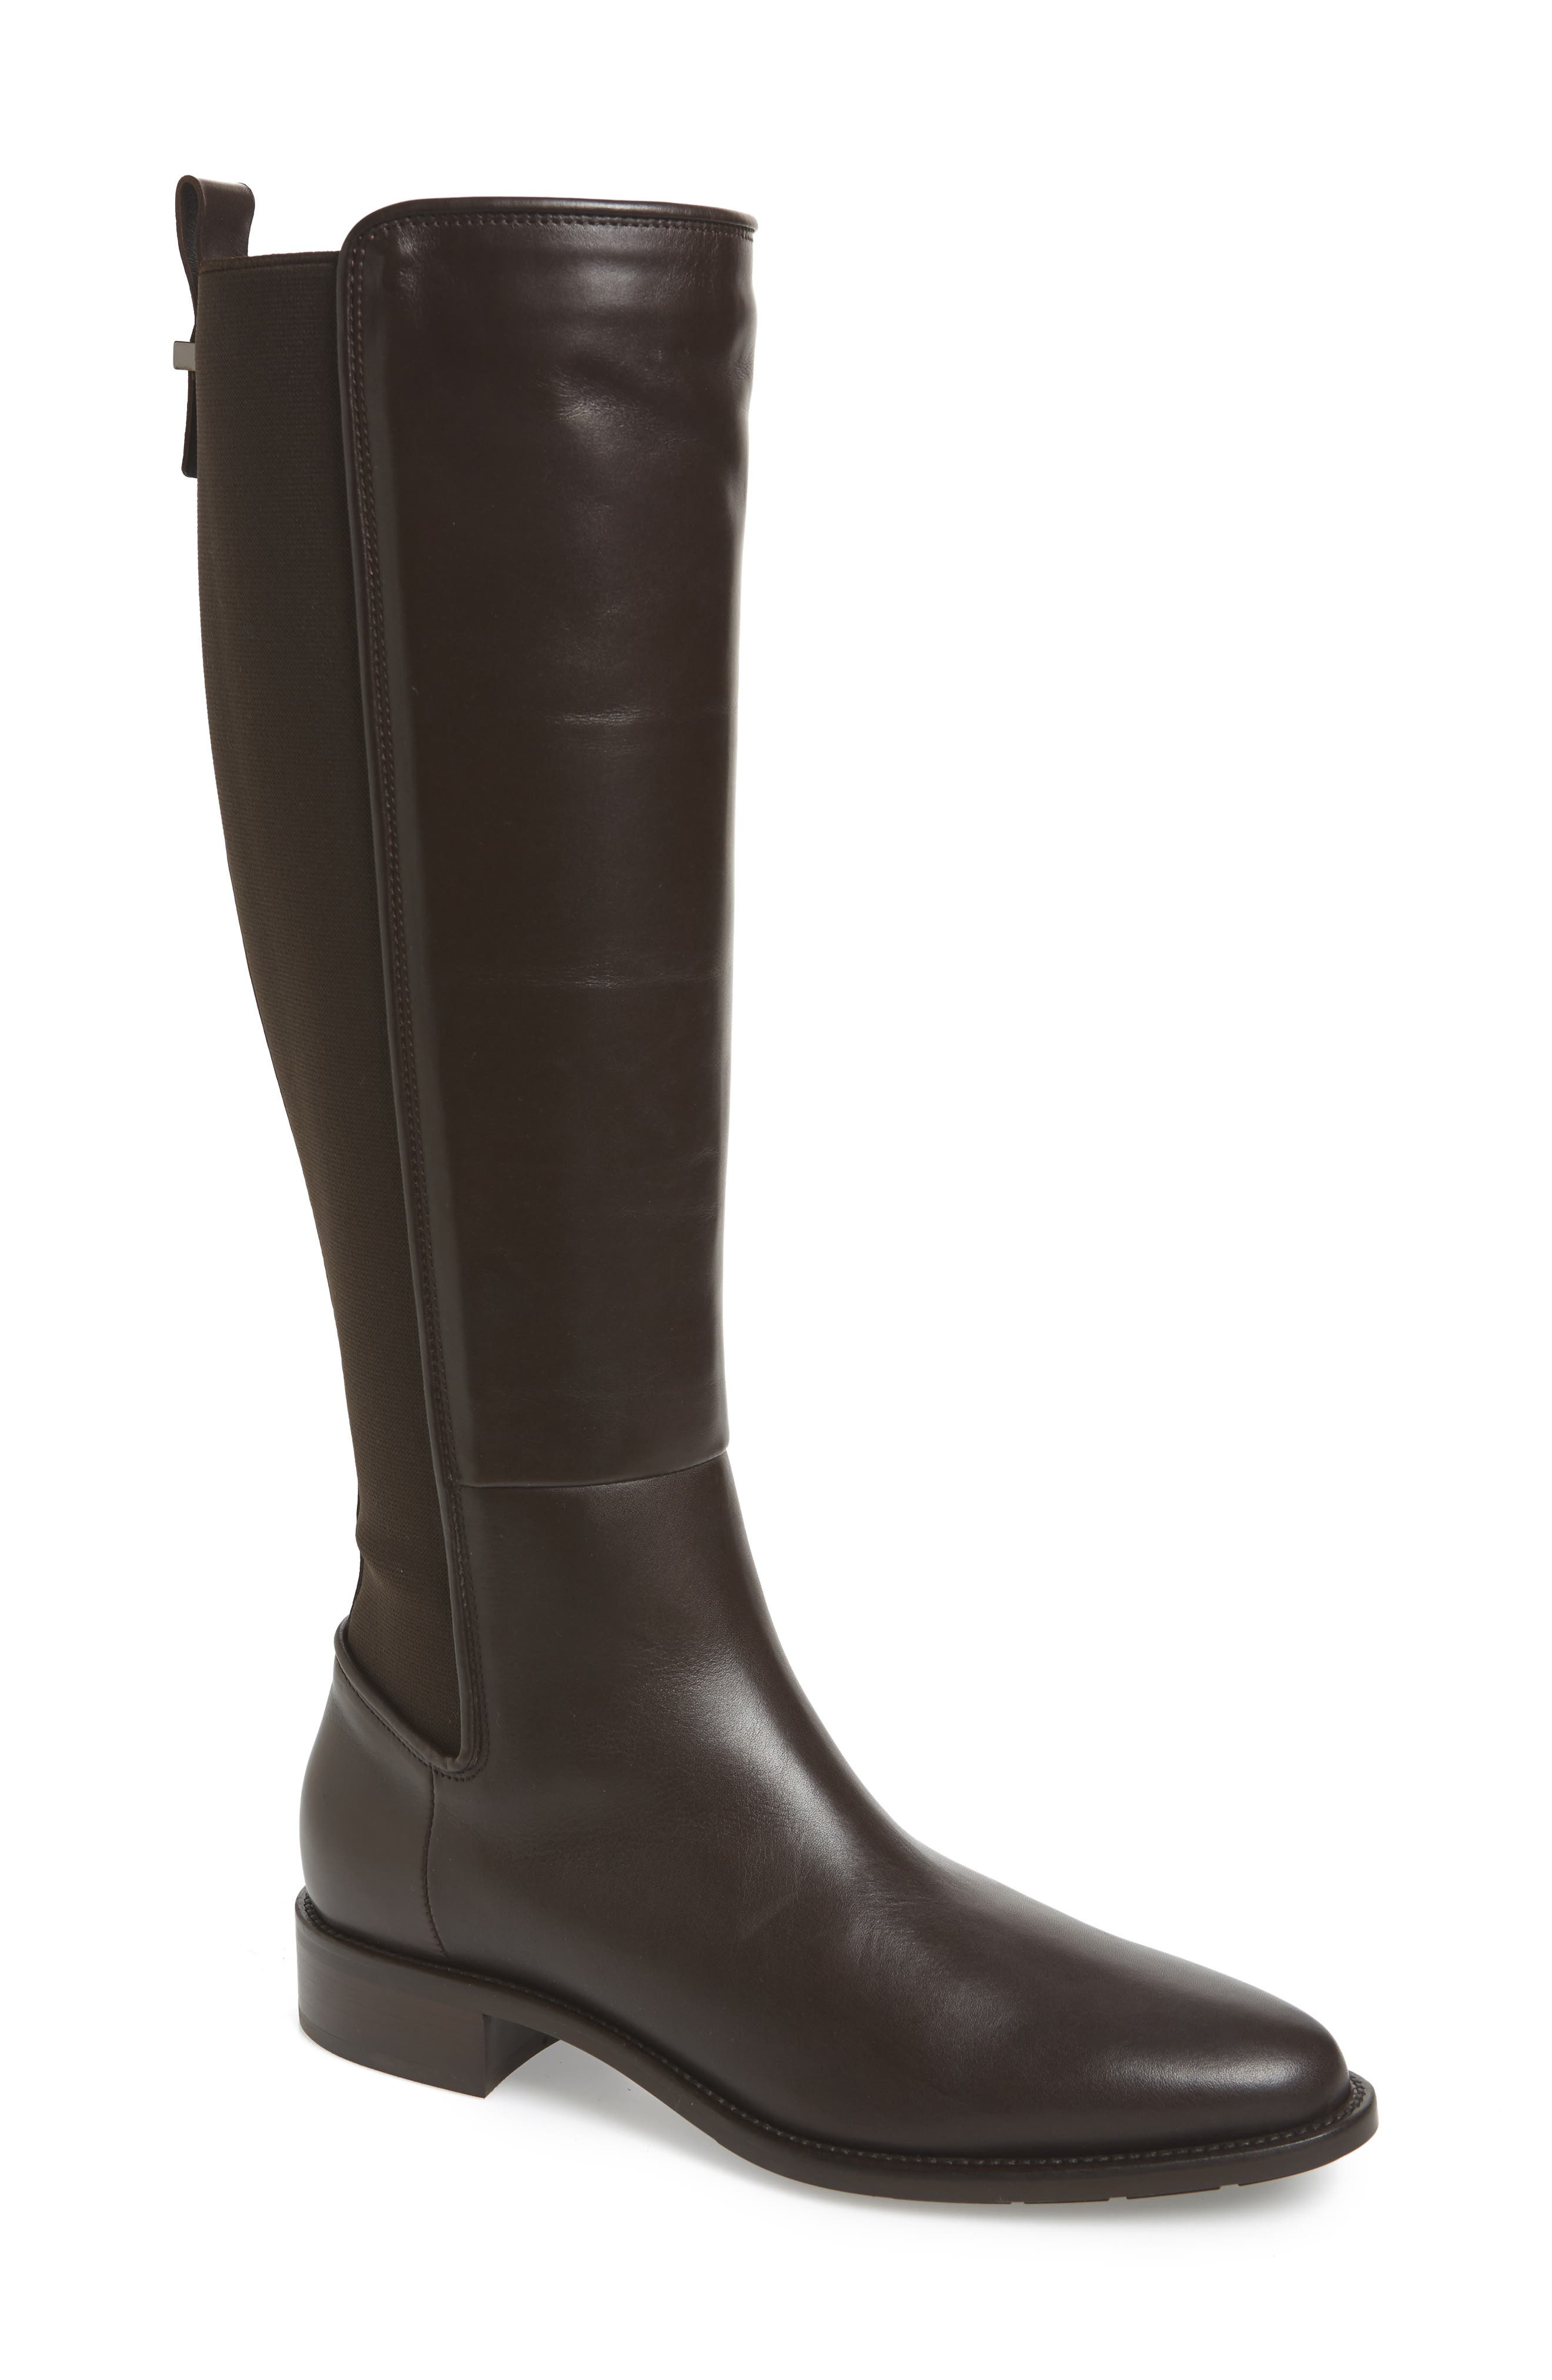 AQUATALIA Women'S Nastia Weatherproof Low-Heel Riding Boots in Black